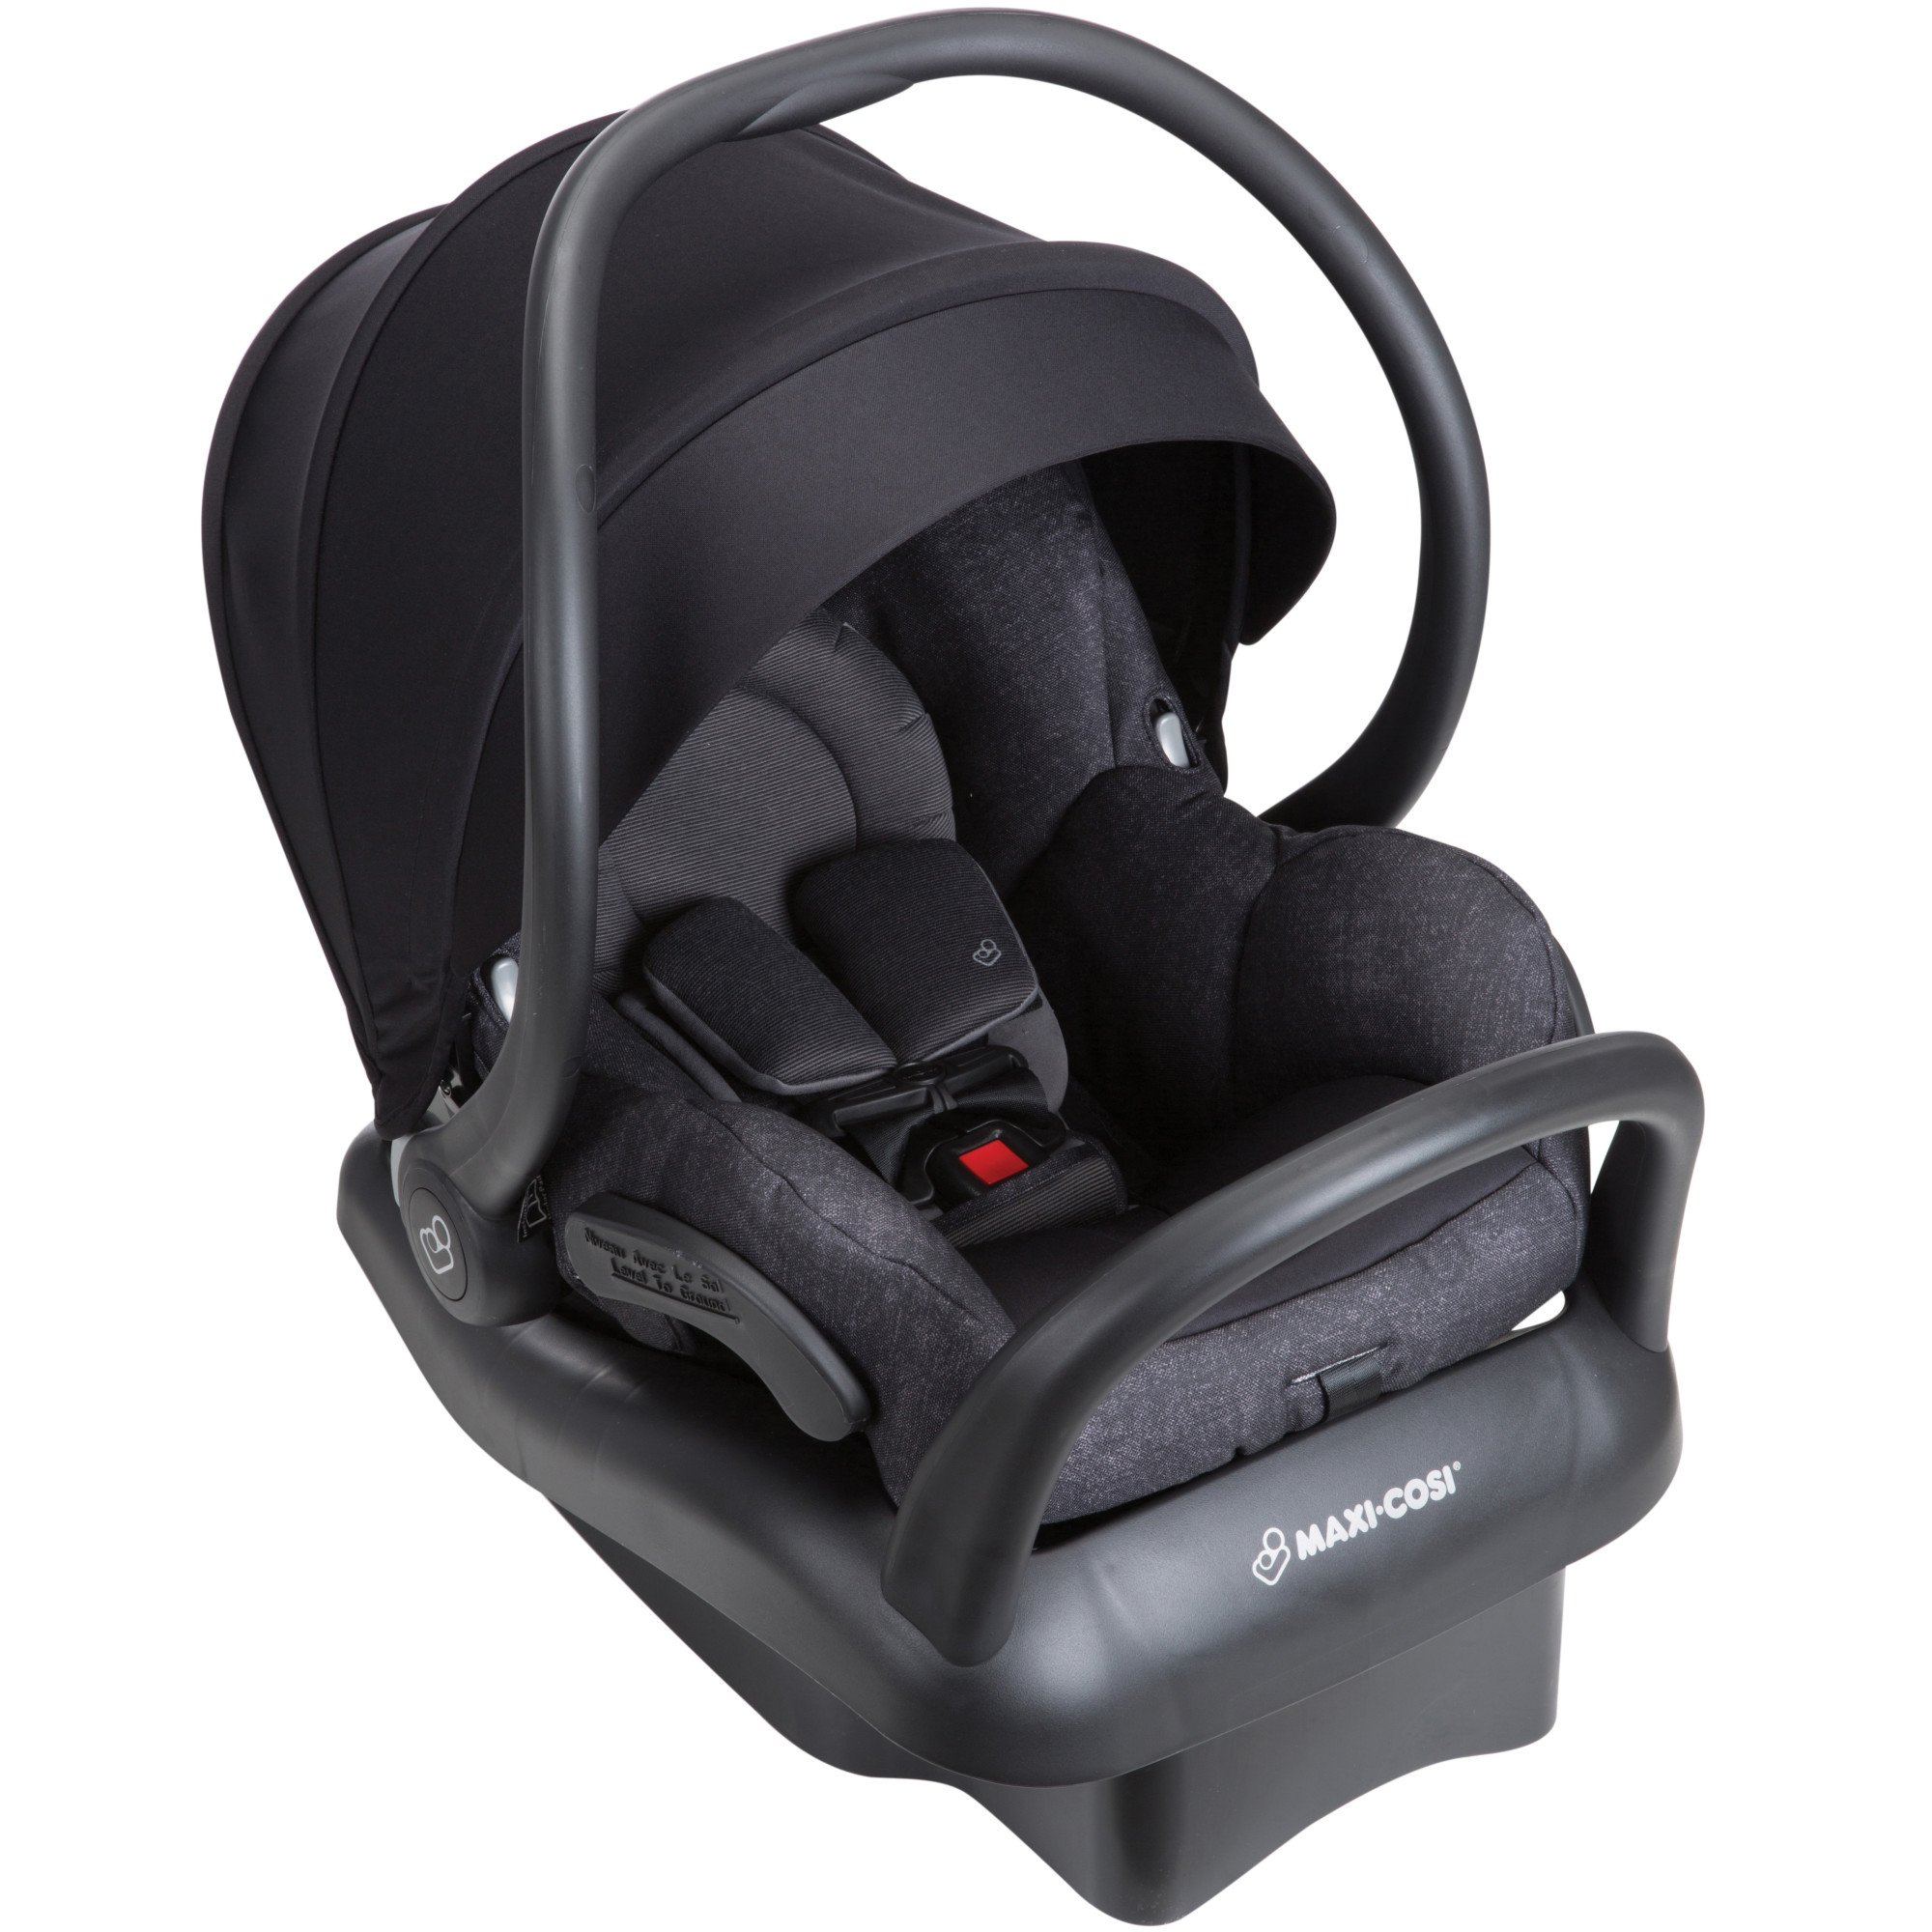 stand dp faucets nxt devoted base black infant car mico seat alone baby maxi ap cosi amazon and com